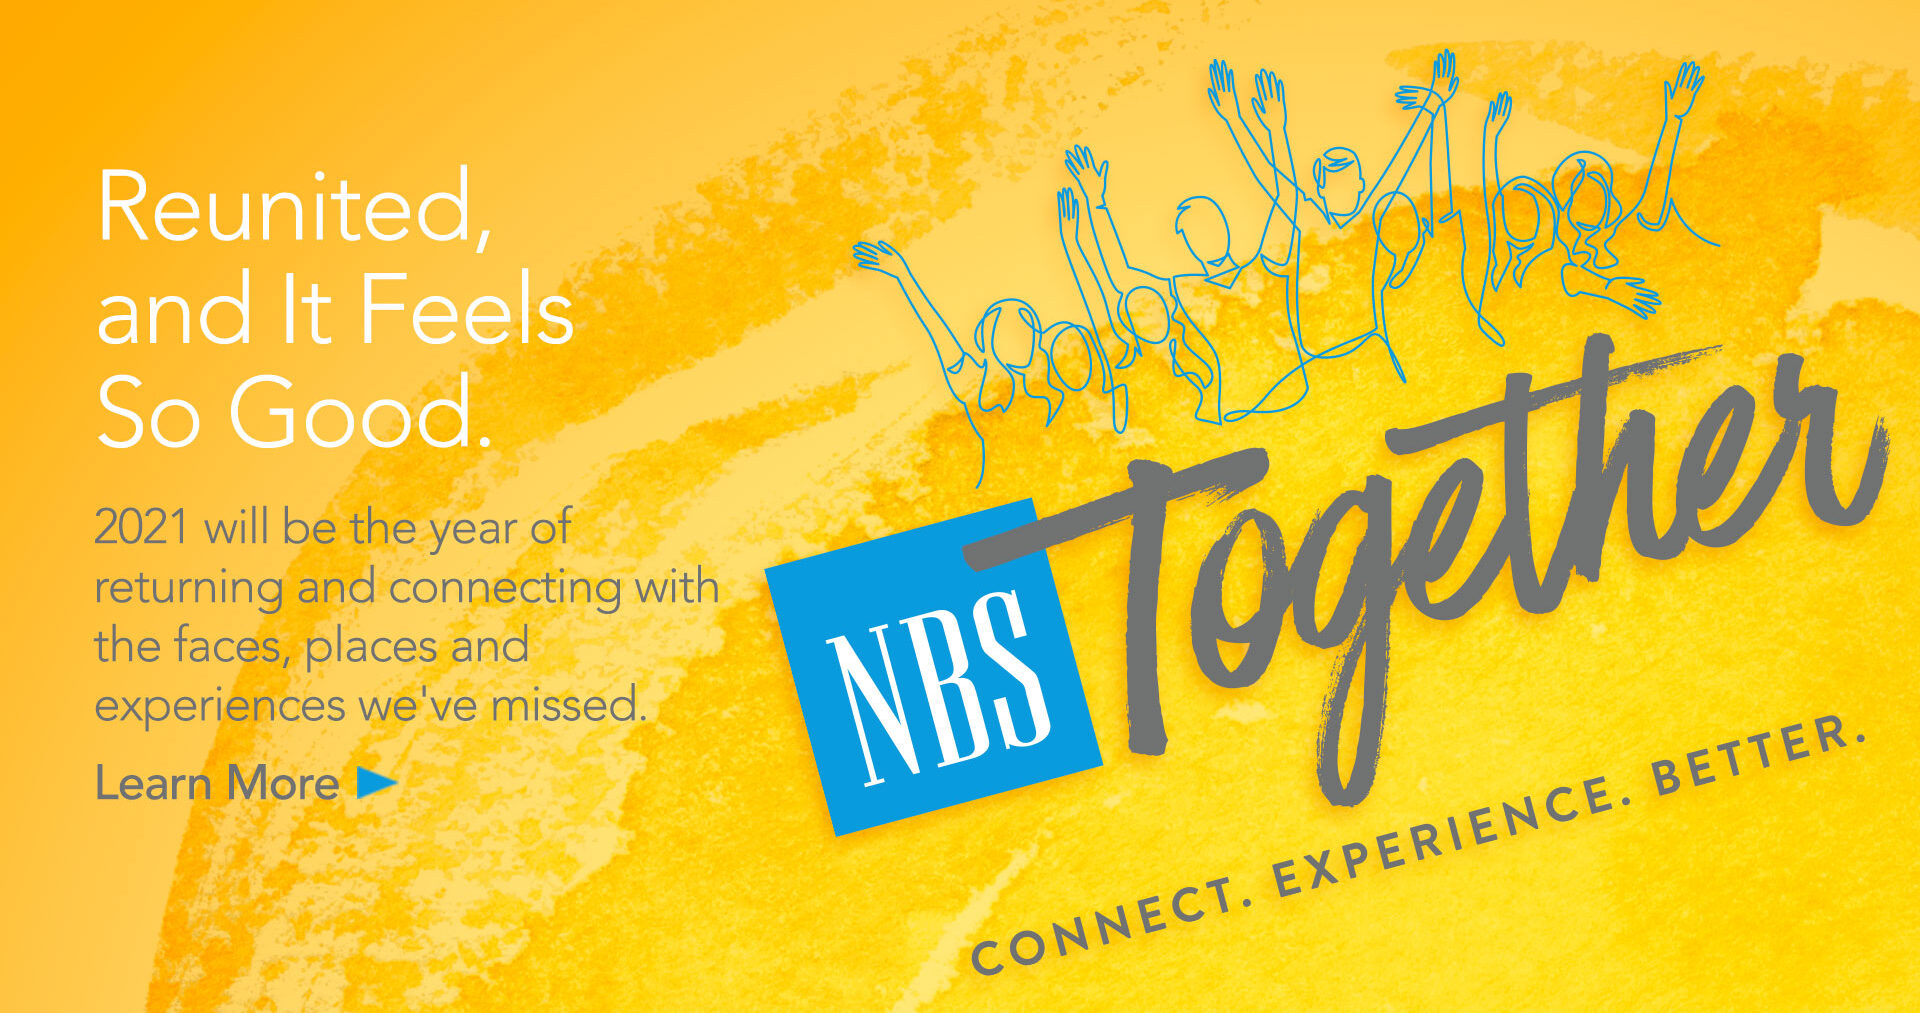 NBS_Together_21_HDL21